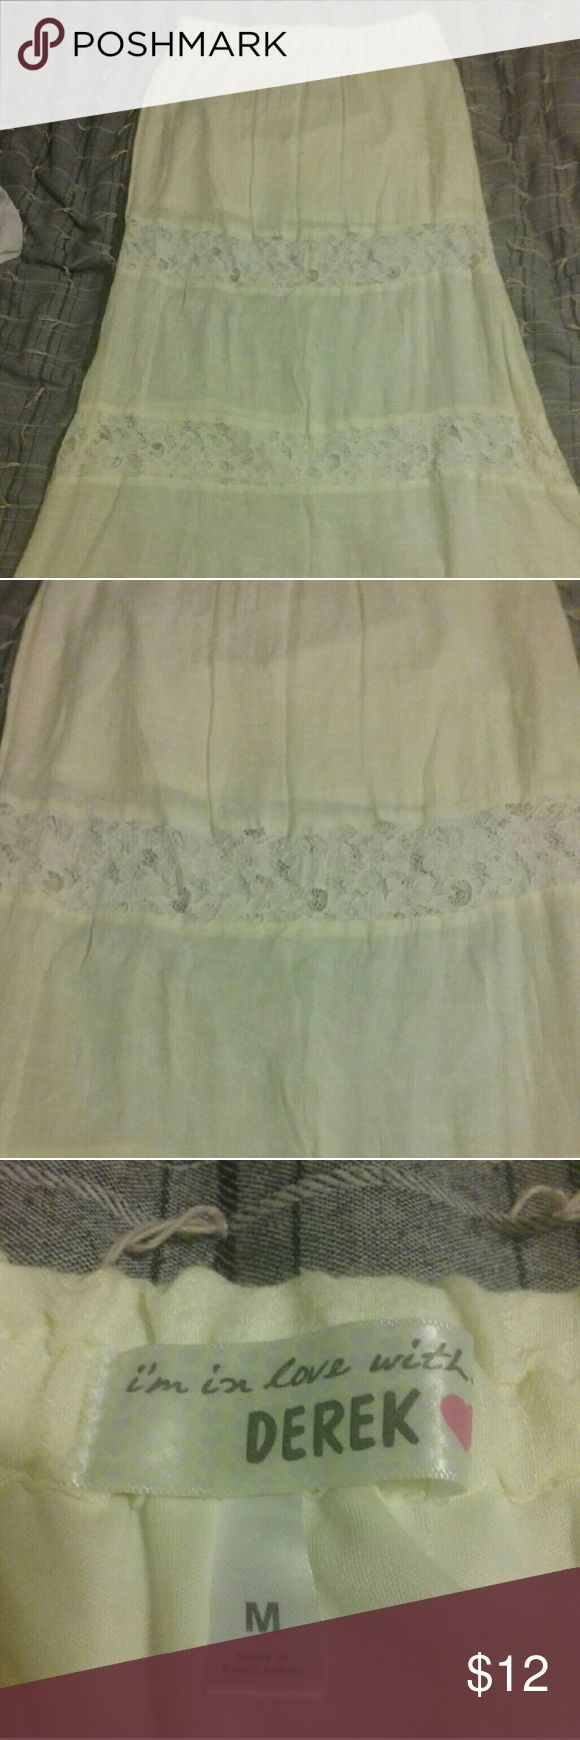 Cotton Maxi Skirt w/lace detail I'm In Love With Derek off-white, light, cotton maxi skirt with two horizontal lace bands. There's a short off-white skirt connected underneath the cotton skirt to keep from show-through of undergarments. Elastic waist. i'm in love with derek Skirts Maxi